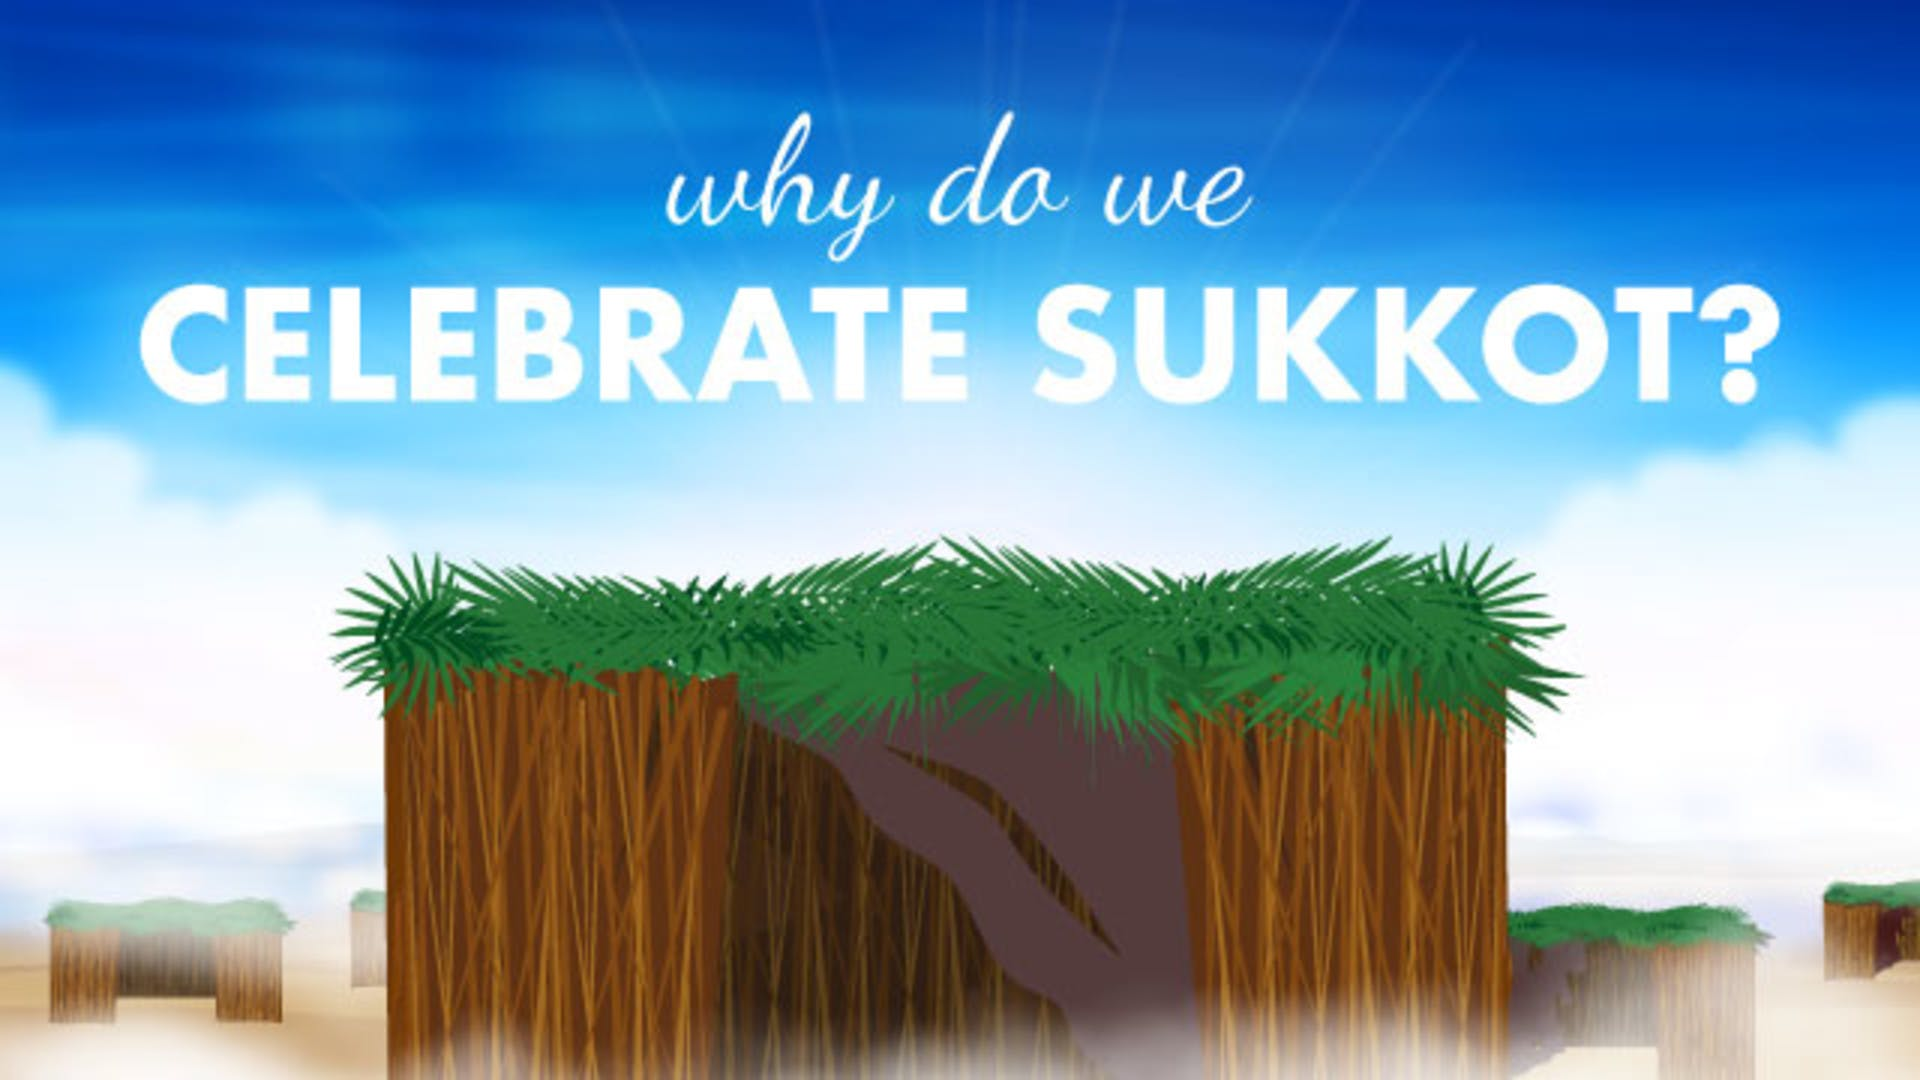 Sukkot Hut Celebration Meaning